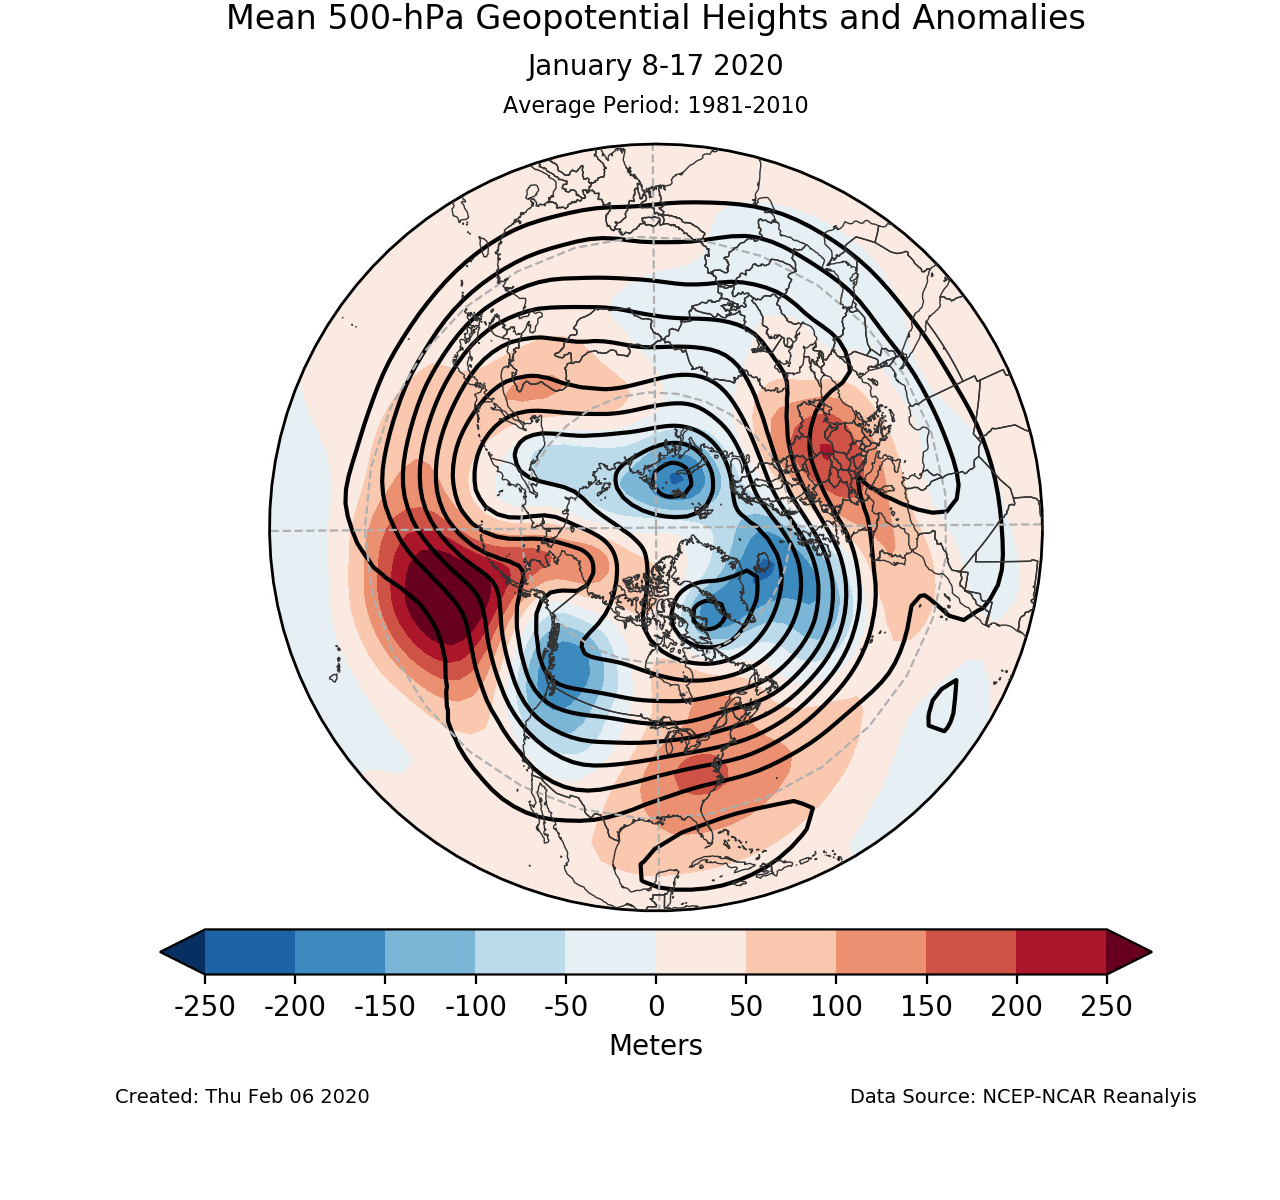 500-mb mean circulation for the Northern Hemisphere for January 8-17 2020